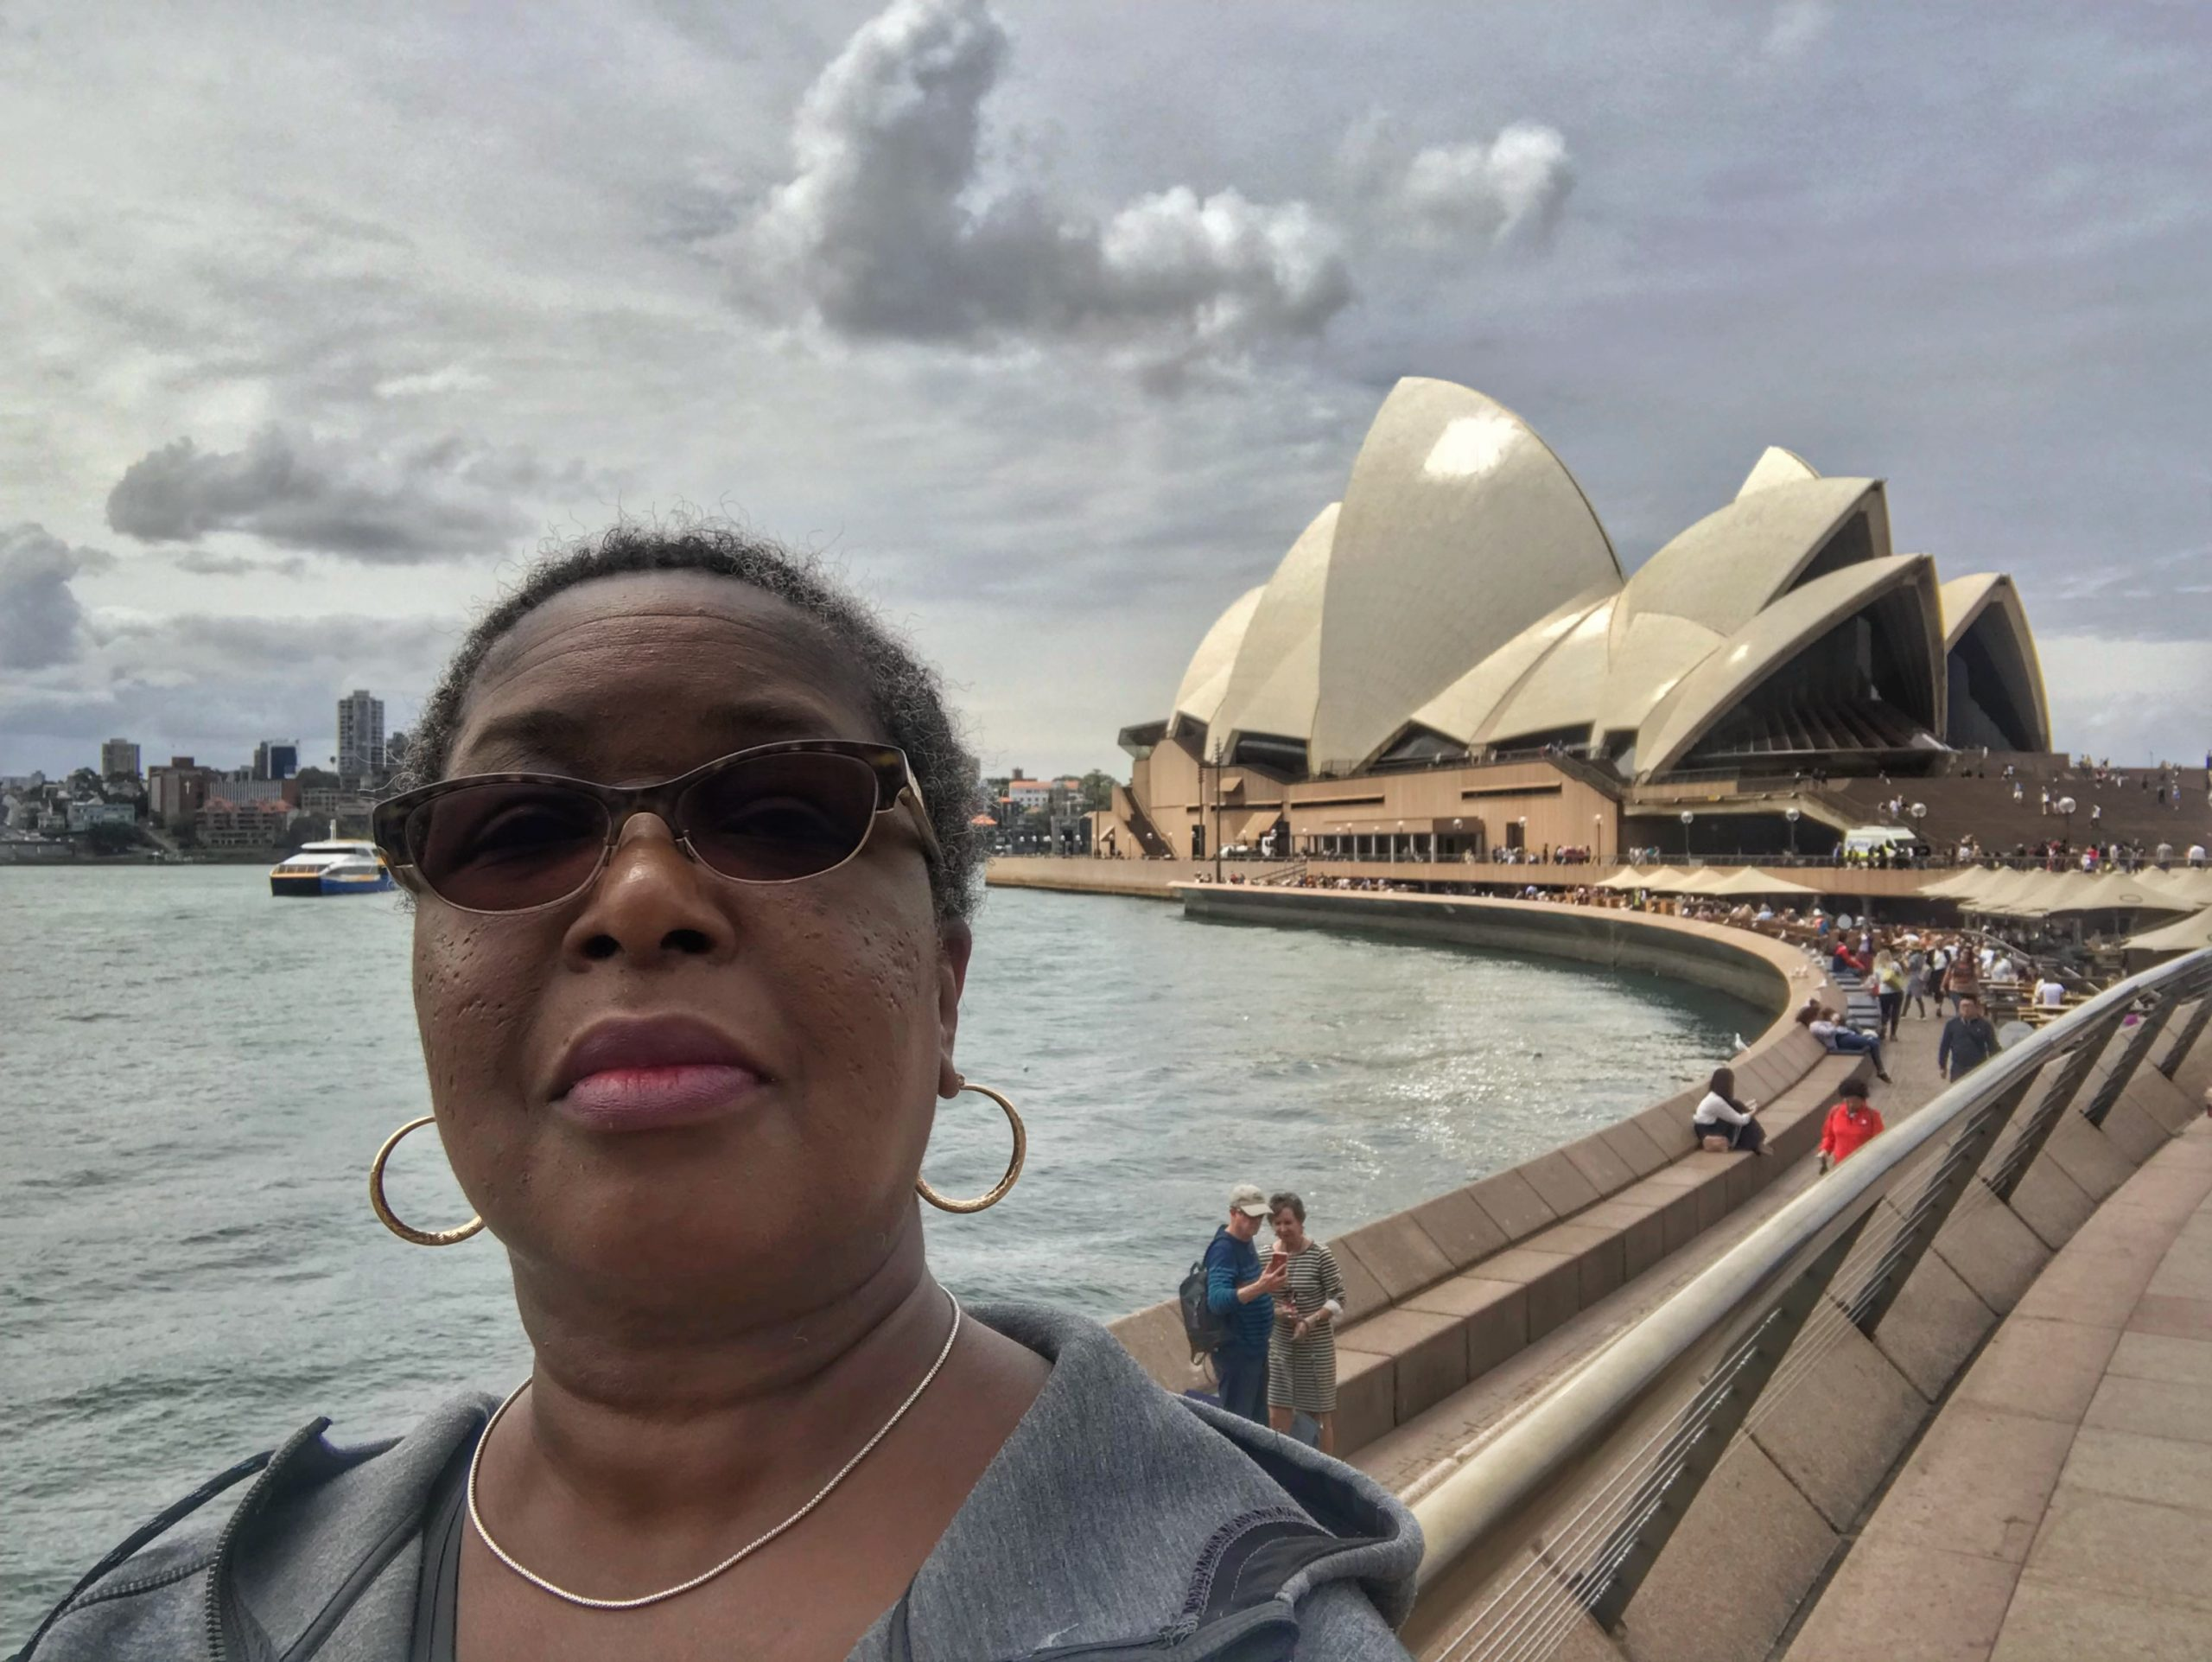 Danielle Lewis, owner of SelfishMe Travel LLC, at the Sydney Opera House in Sydney, Australia - image taken with an iPhone 7